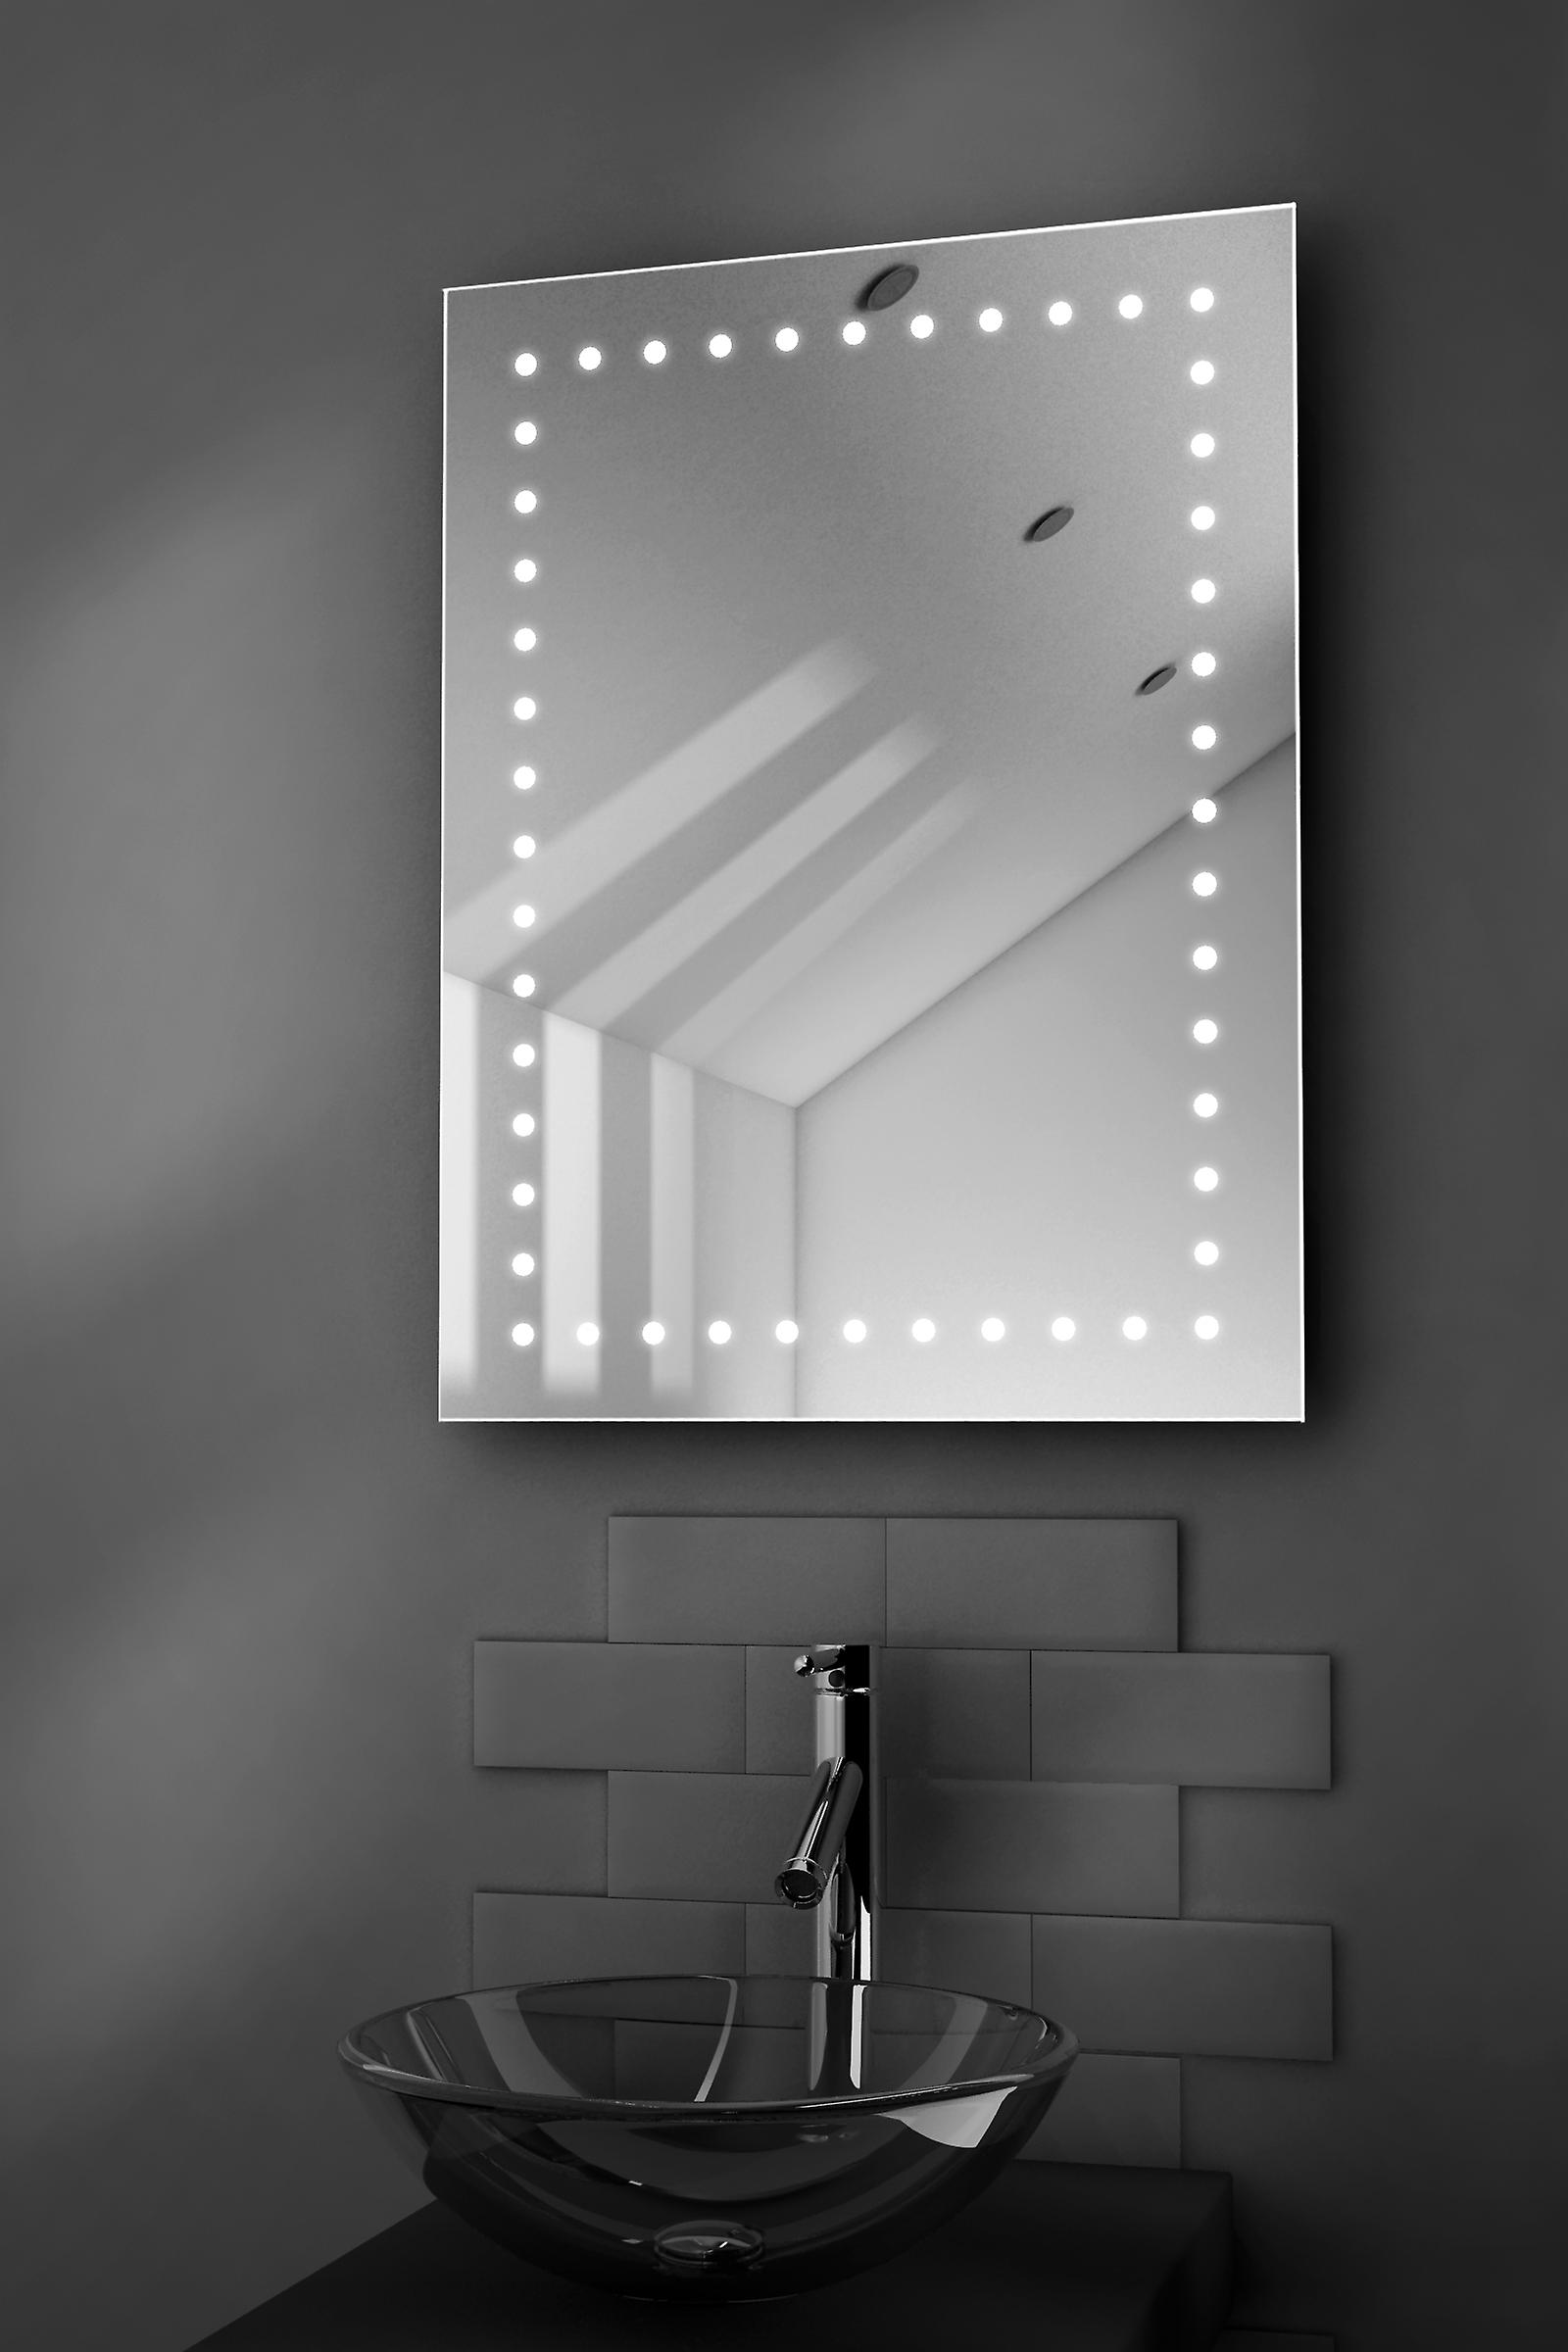 Demister Slimline LED Illuminated Bathroom Mirror H800 x W600 x D30